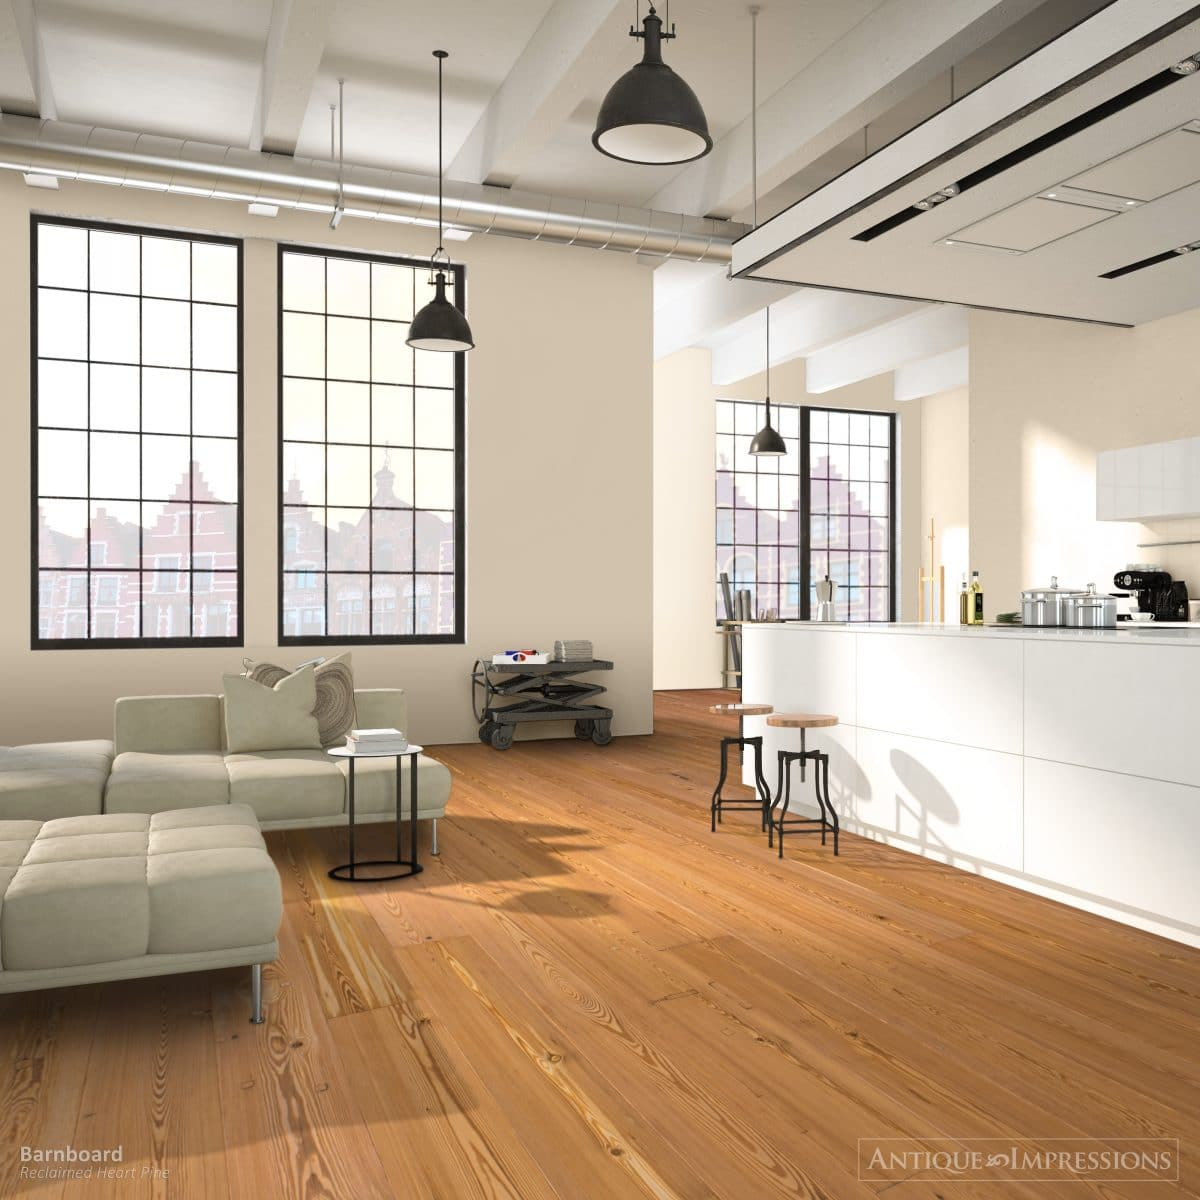 How to Choose the Best Reclaimed Flooring